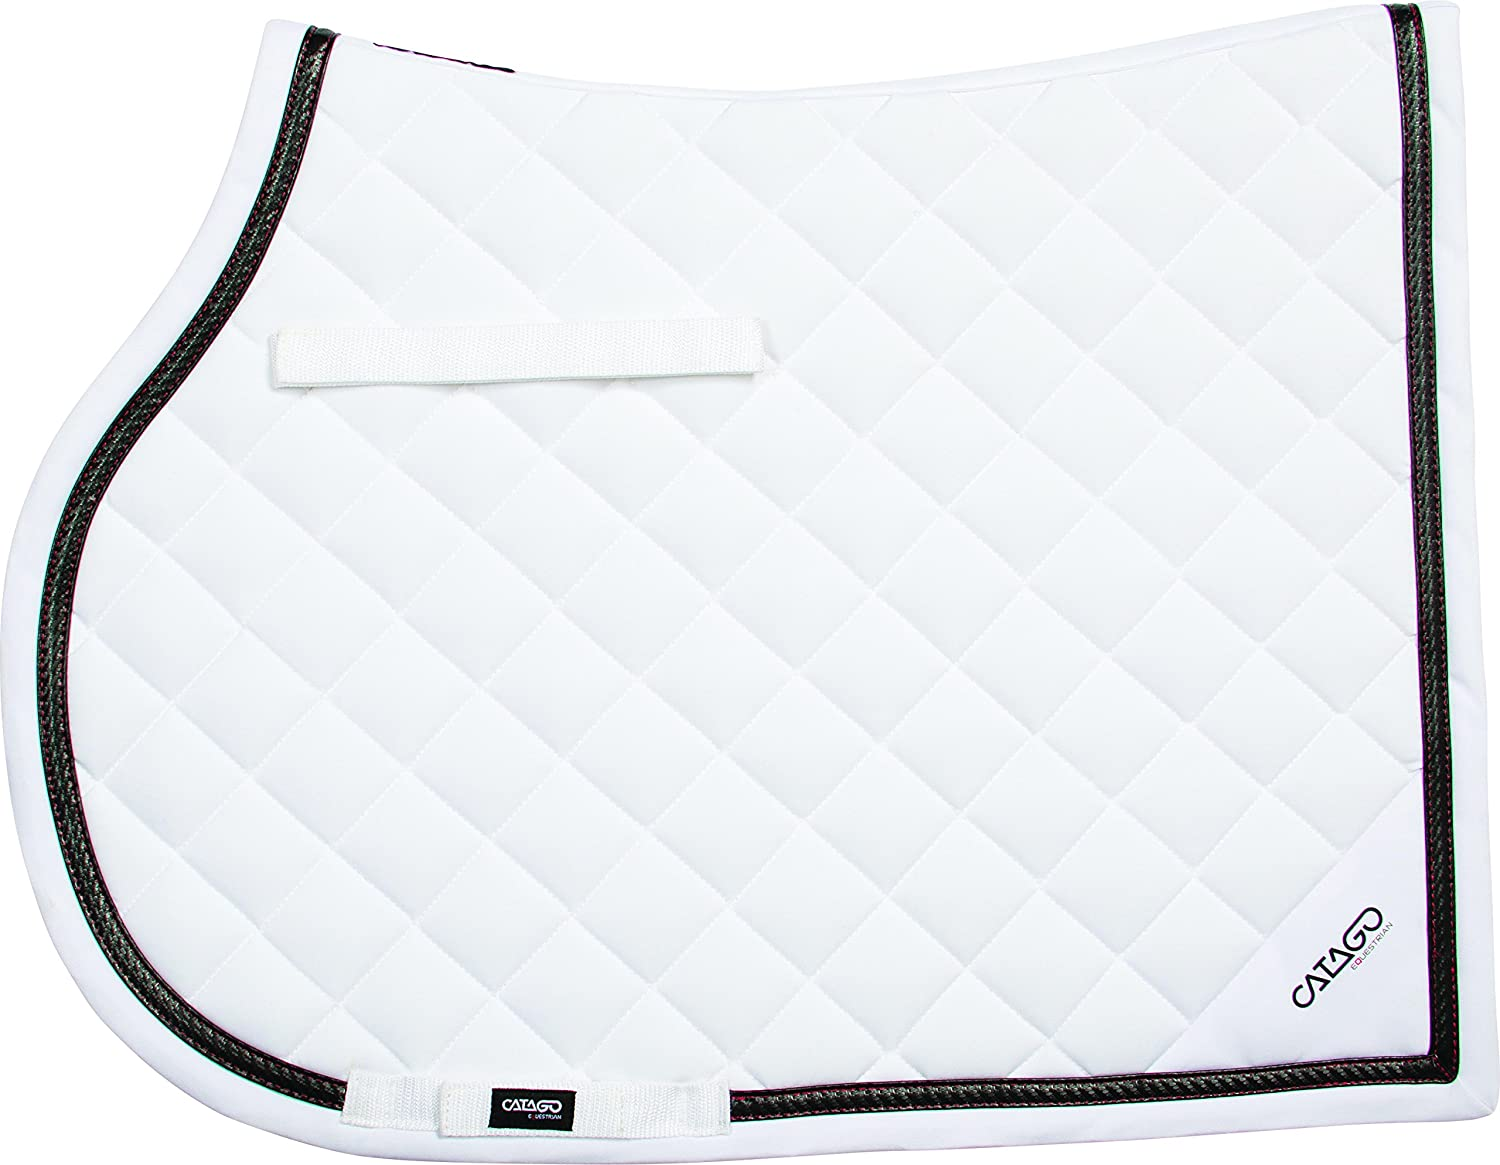 CATAGO 3dtech Series All.p.16 Saddle Pad